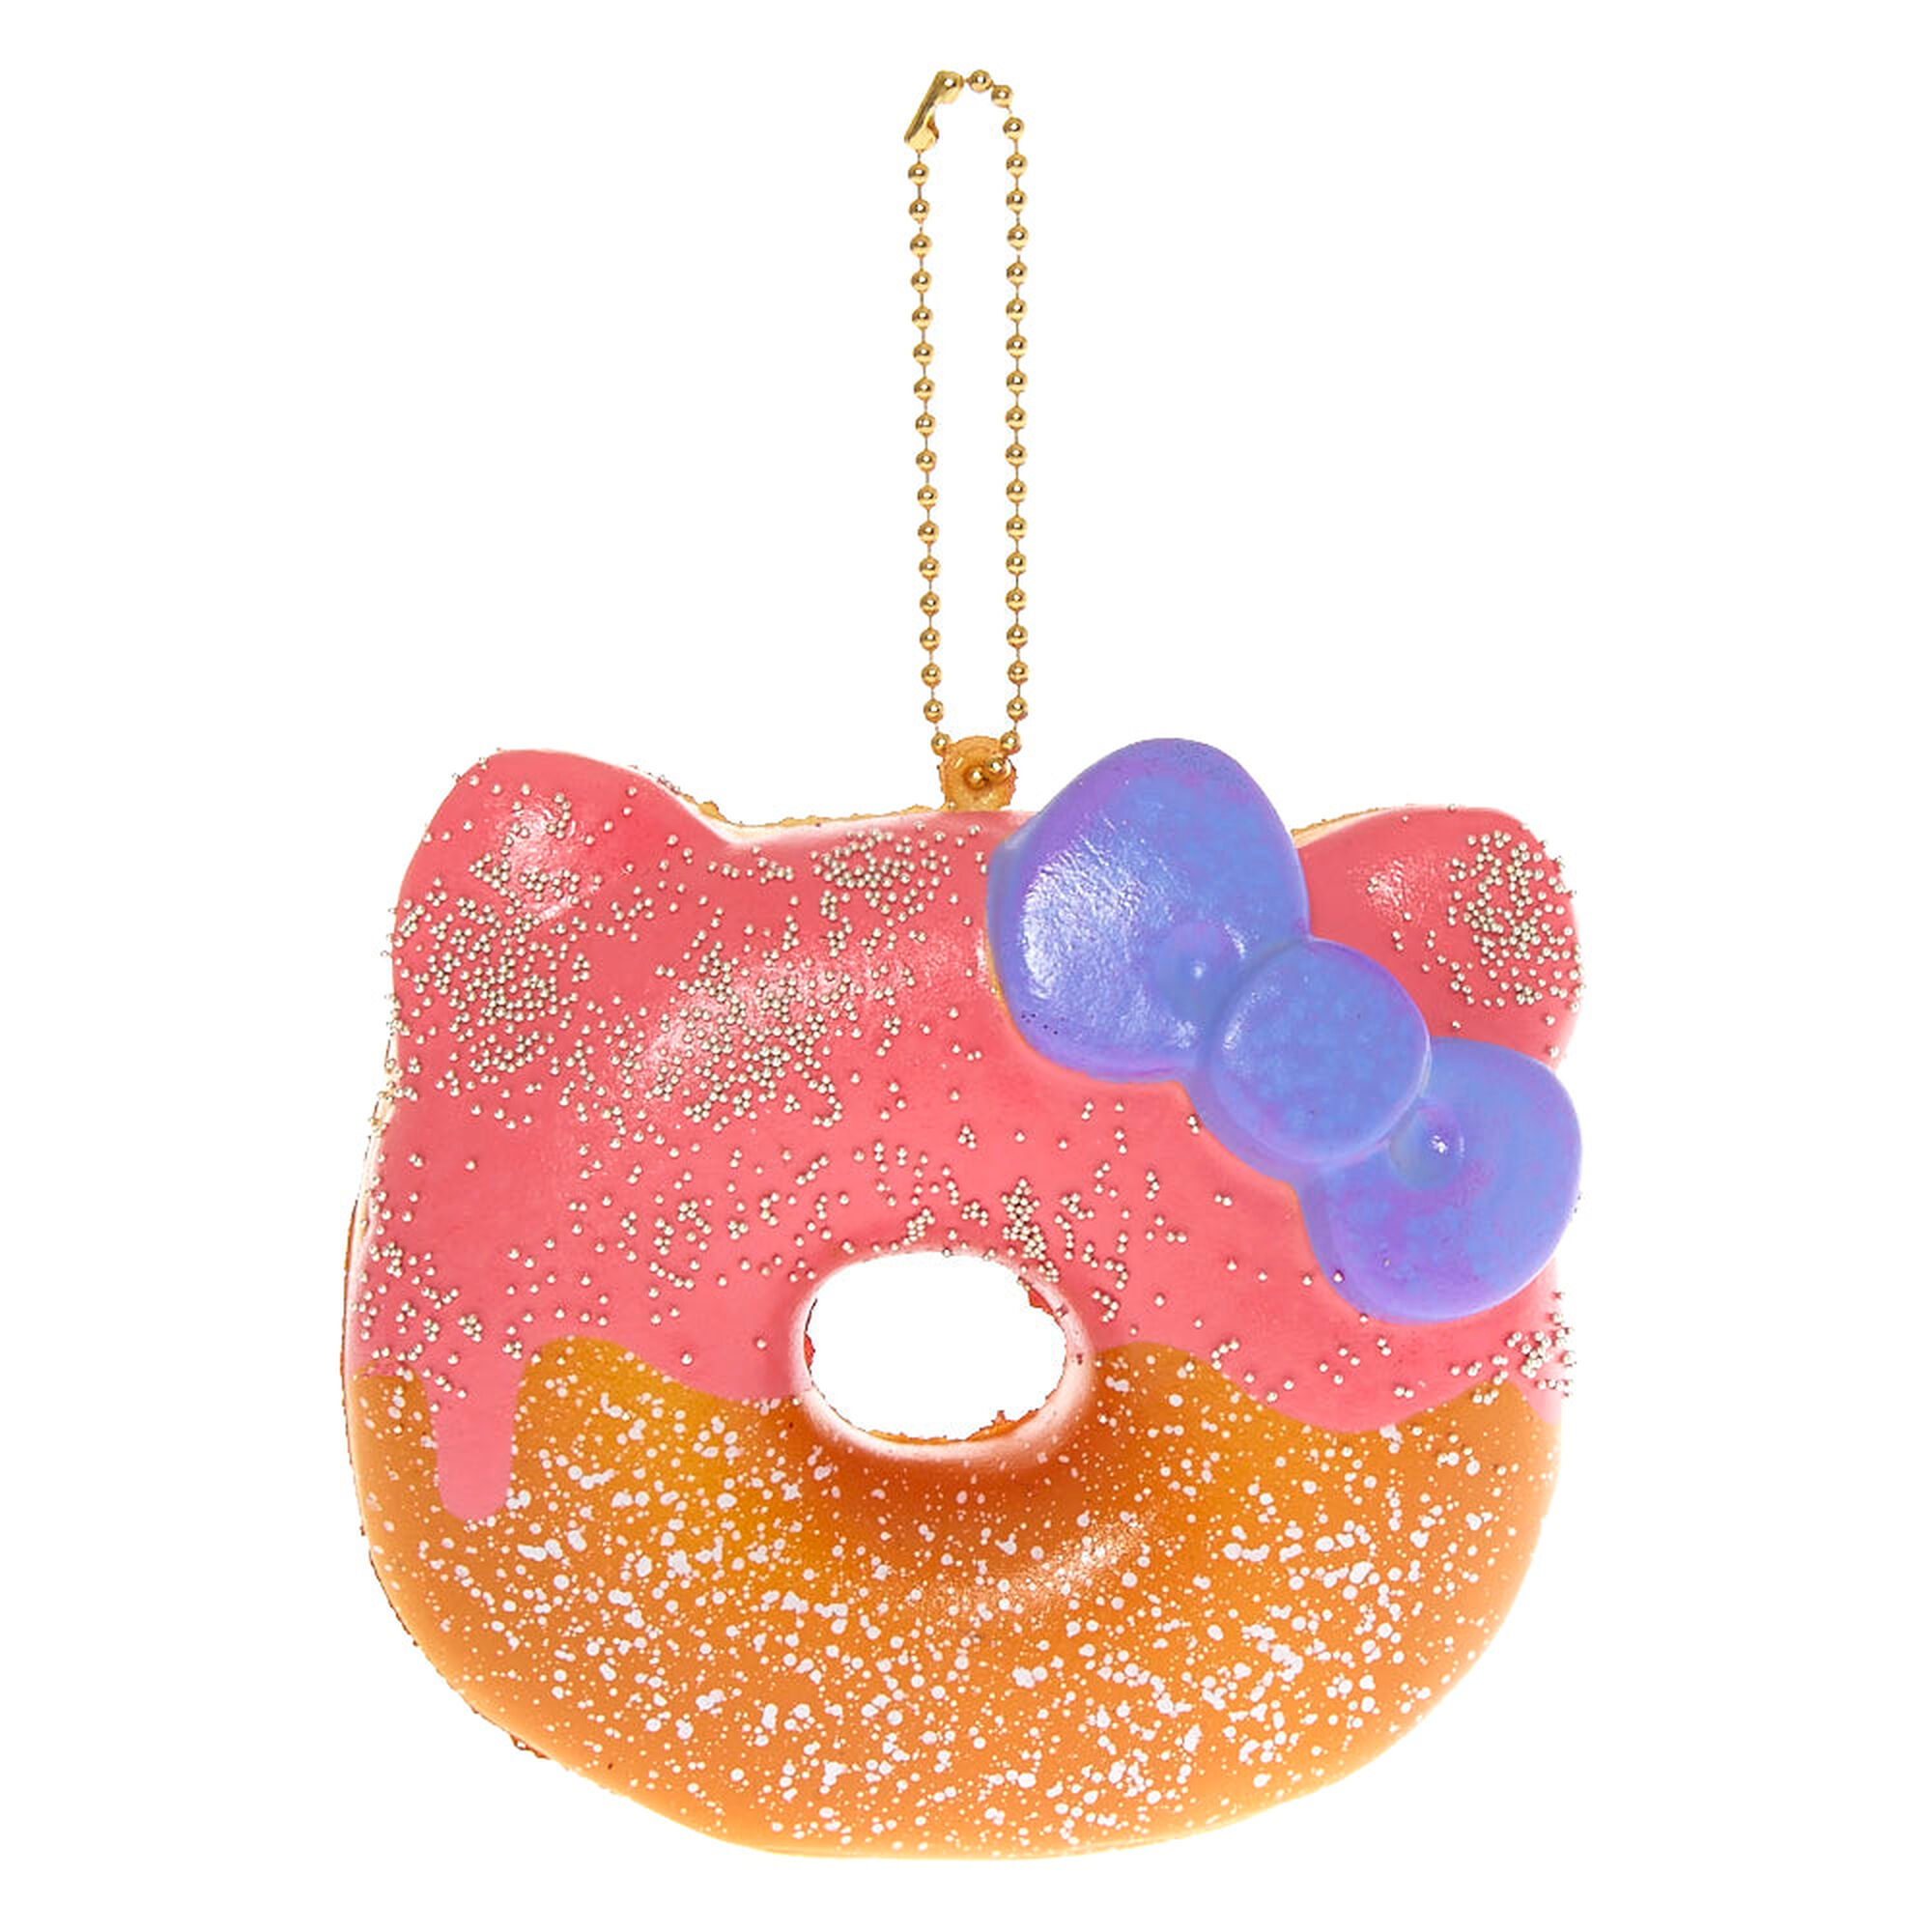 Squishy Hello Kitty Donut 2015 : Hello Kitty Squishy: Half Strawberry Donut Claire s US